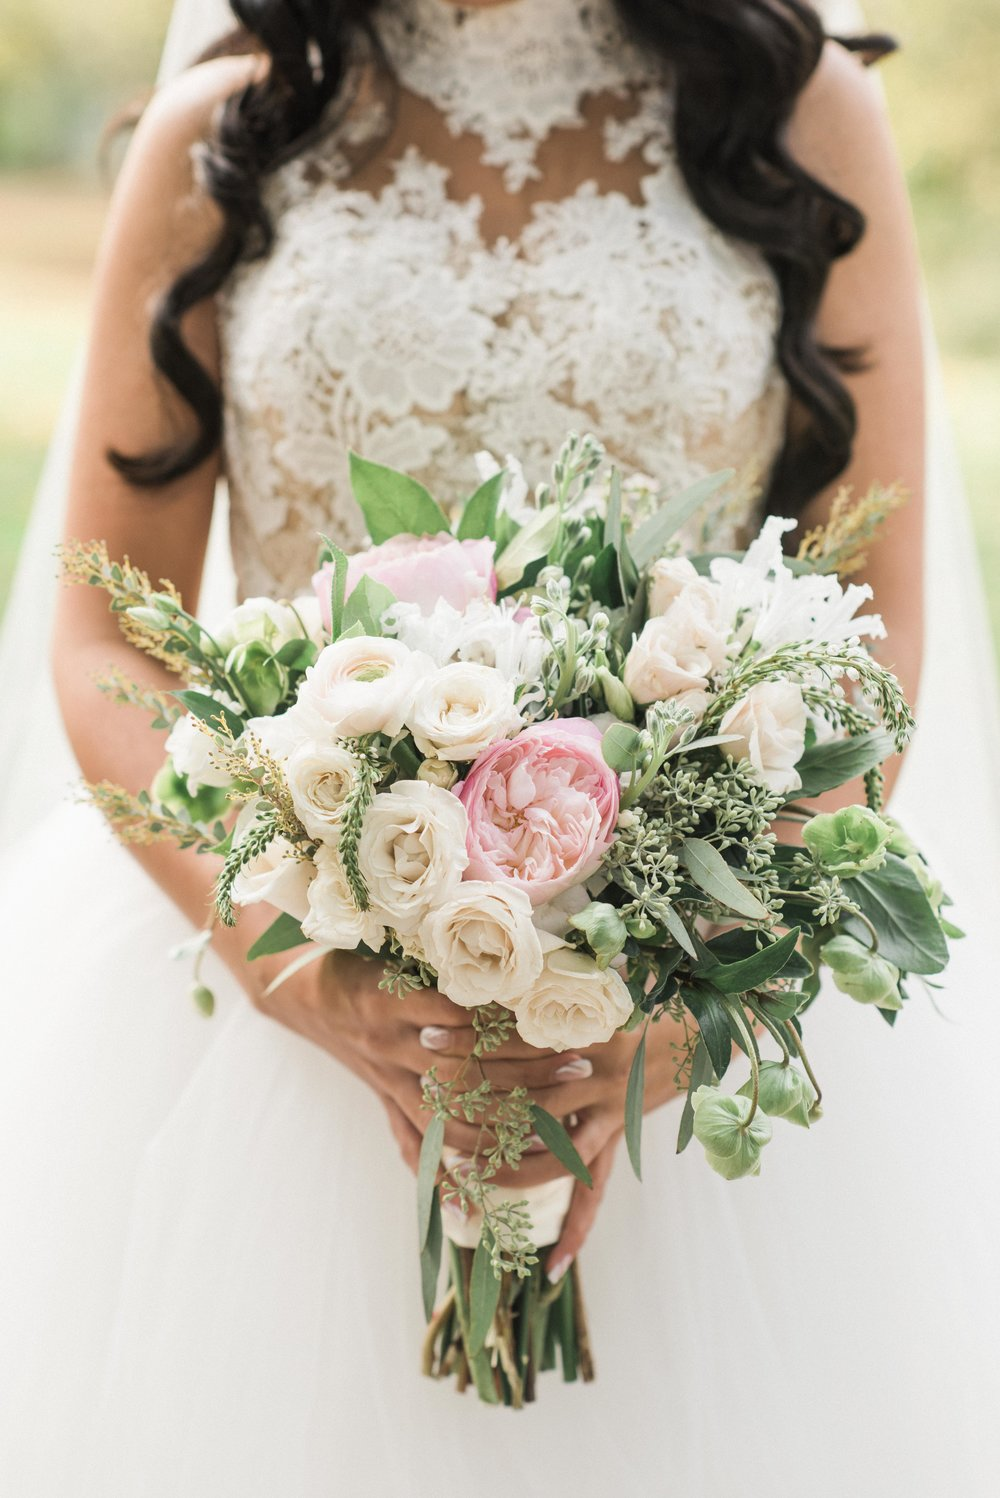 Bride, Bridal Bouquet, Bouquet shot, beautiful wedding flowers, wedding flowers, bride holding her bouquet, princess wedding gown, wedding gown with lace